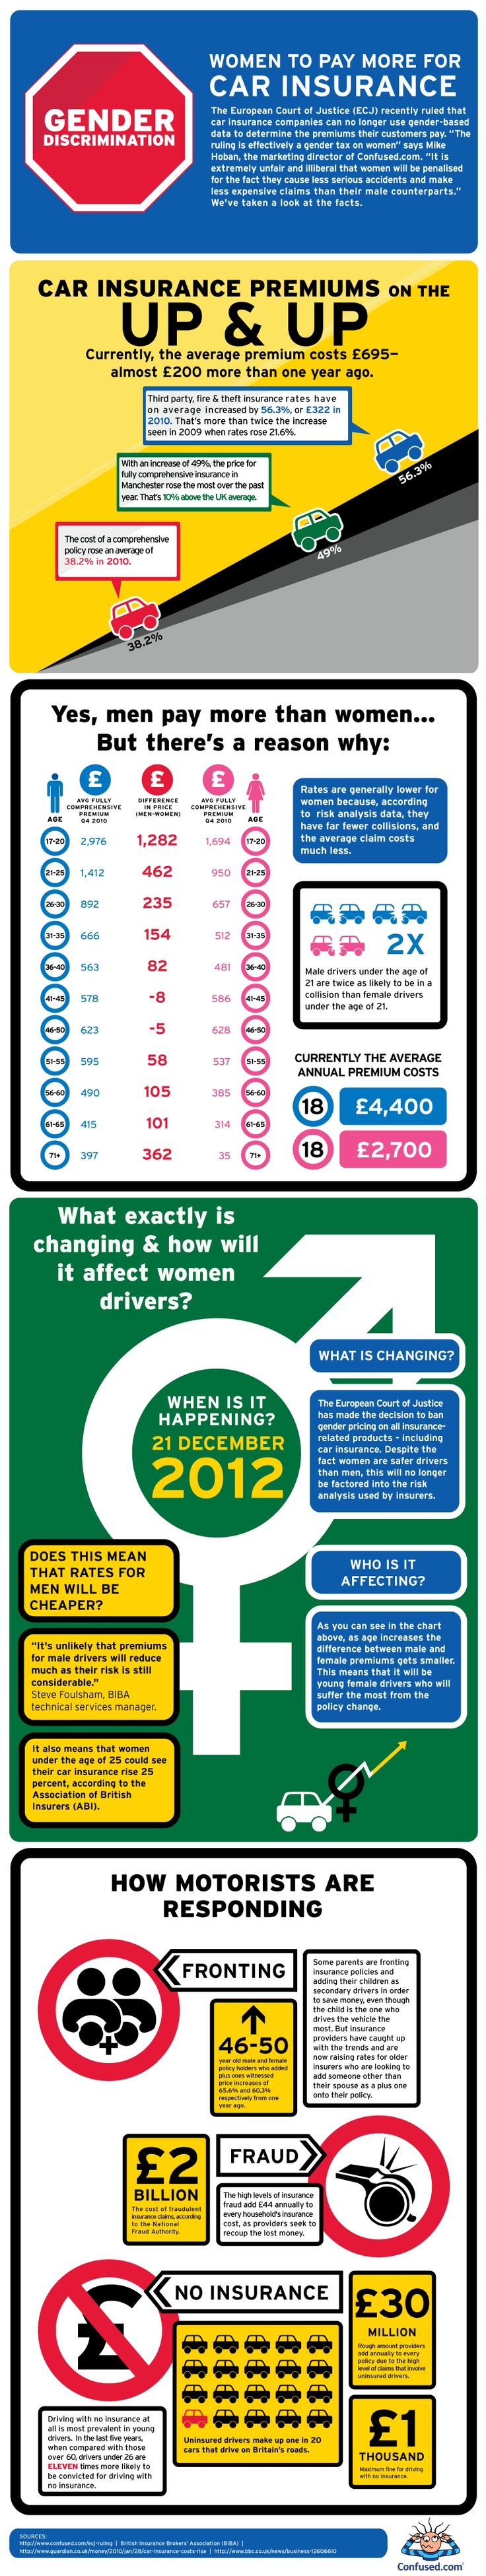 Women to pay more for car insurance - http://www.confused.com/news-views/infographics/gender-discrimination